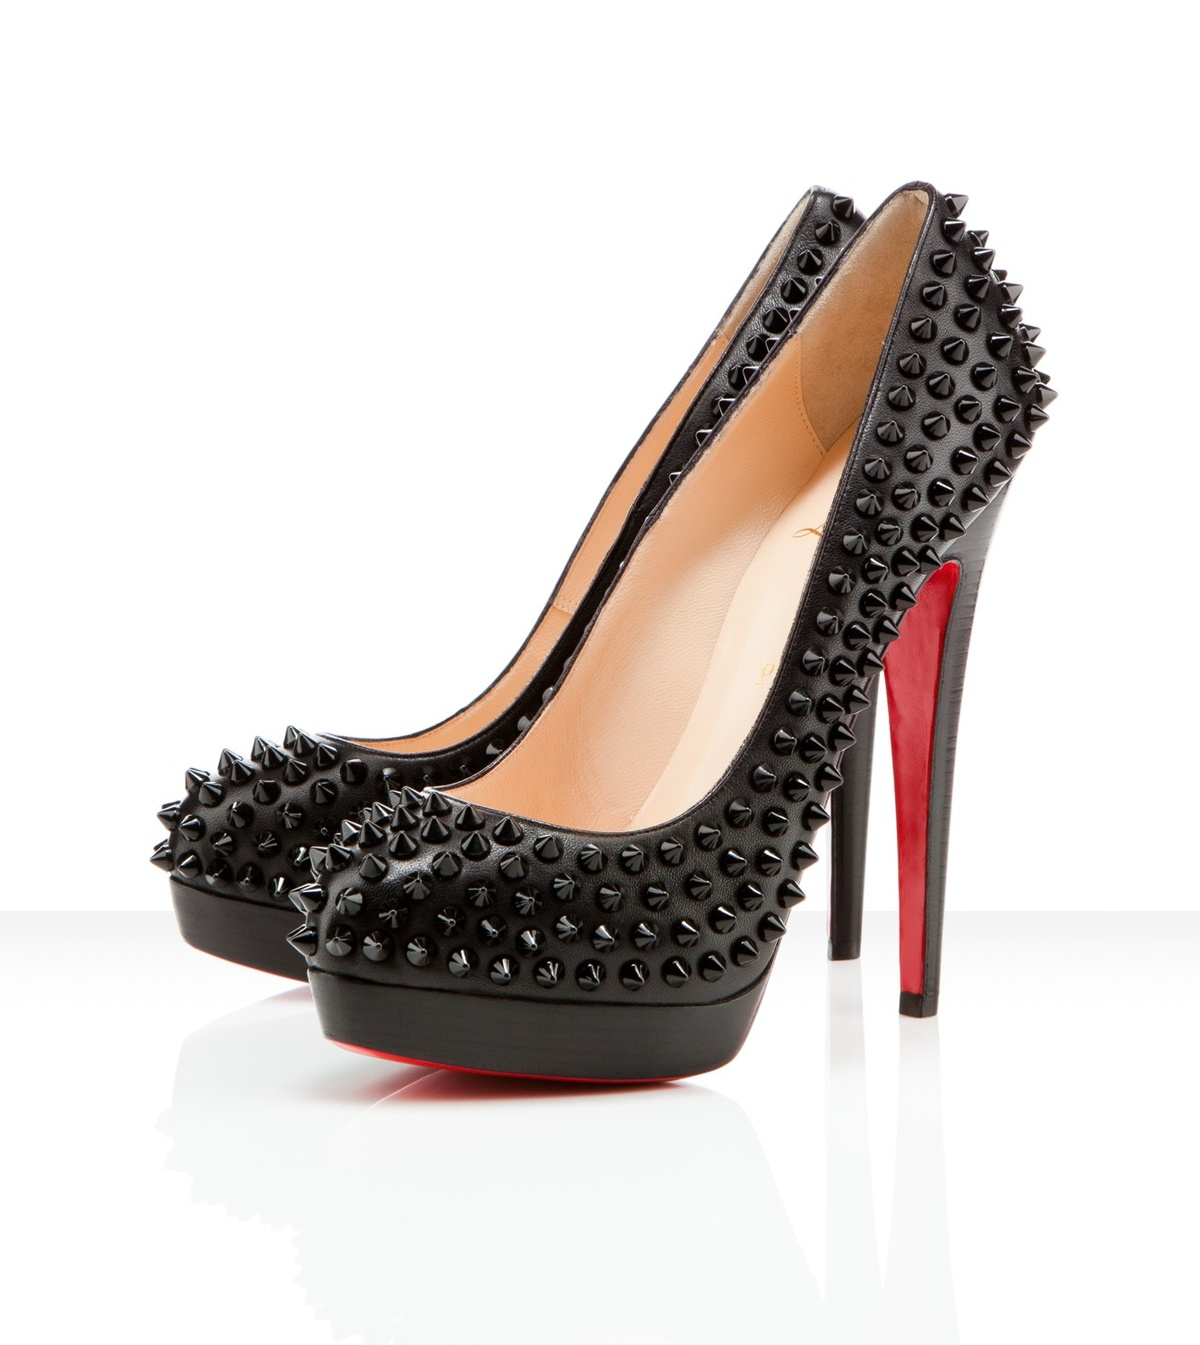 christian louboutin, christian louboutin sale, christian louboutin shoes, louboutin outlet, shoes outlet